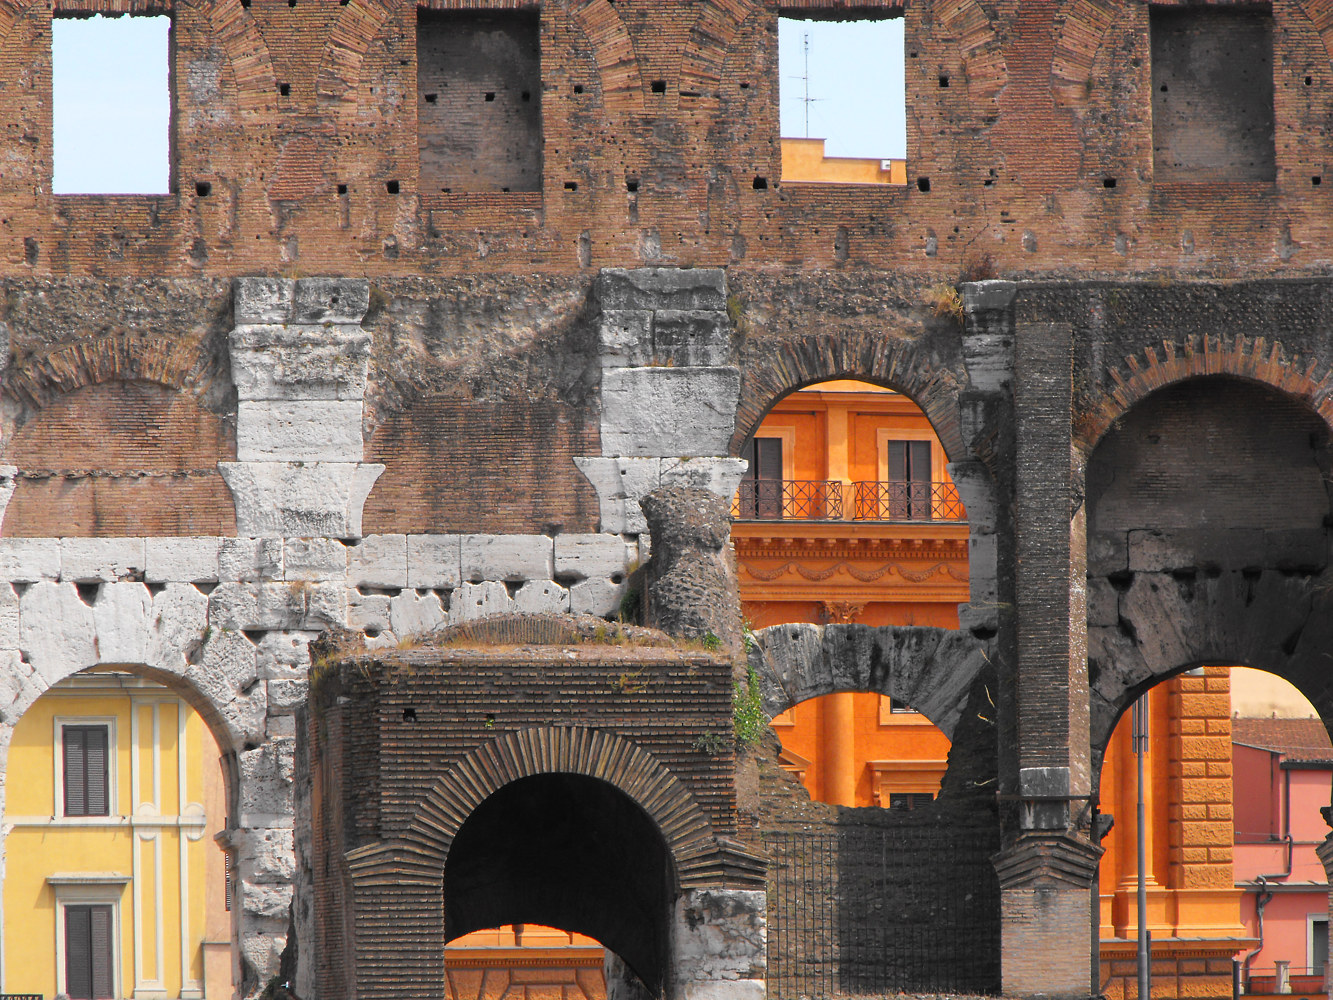 Photography Colosseum, Rome, Italy (2009) by Scott Ross